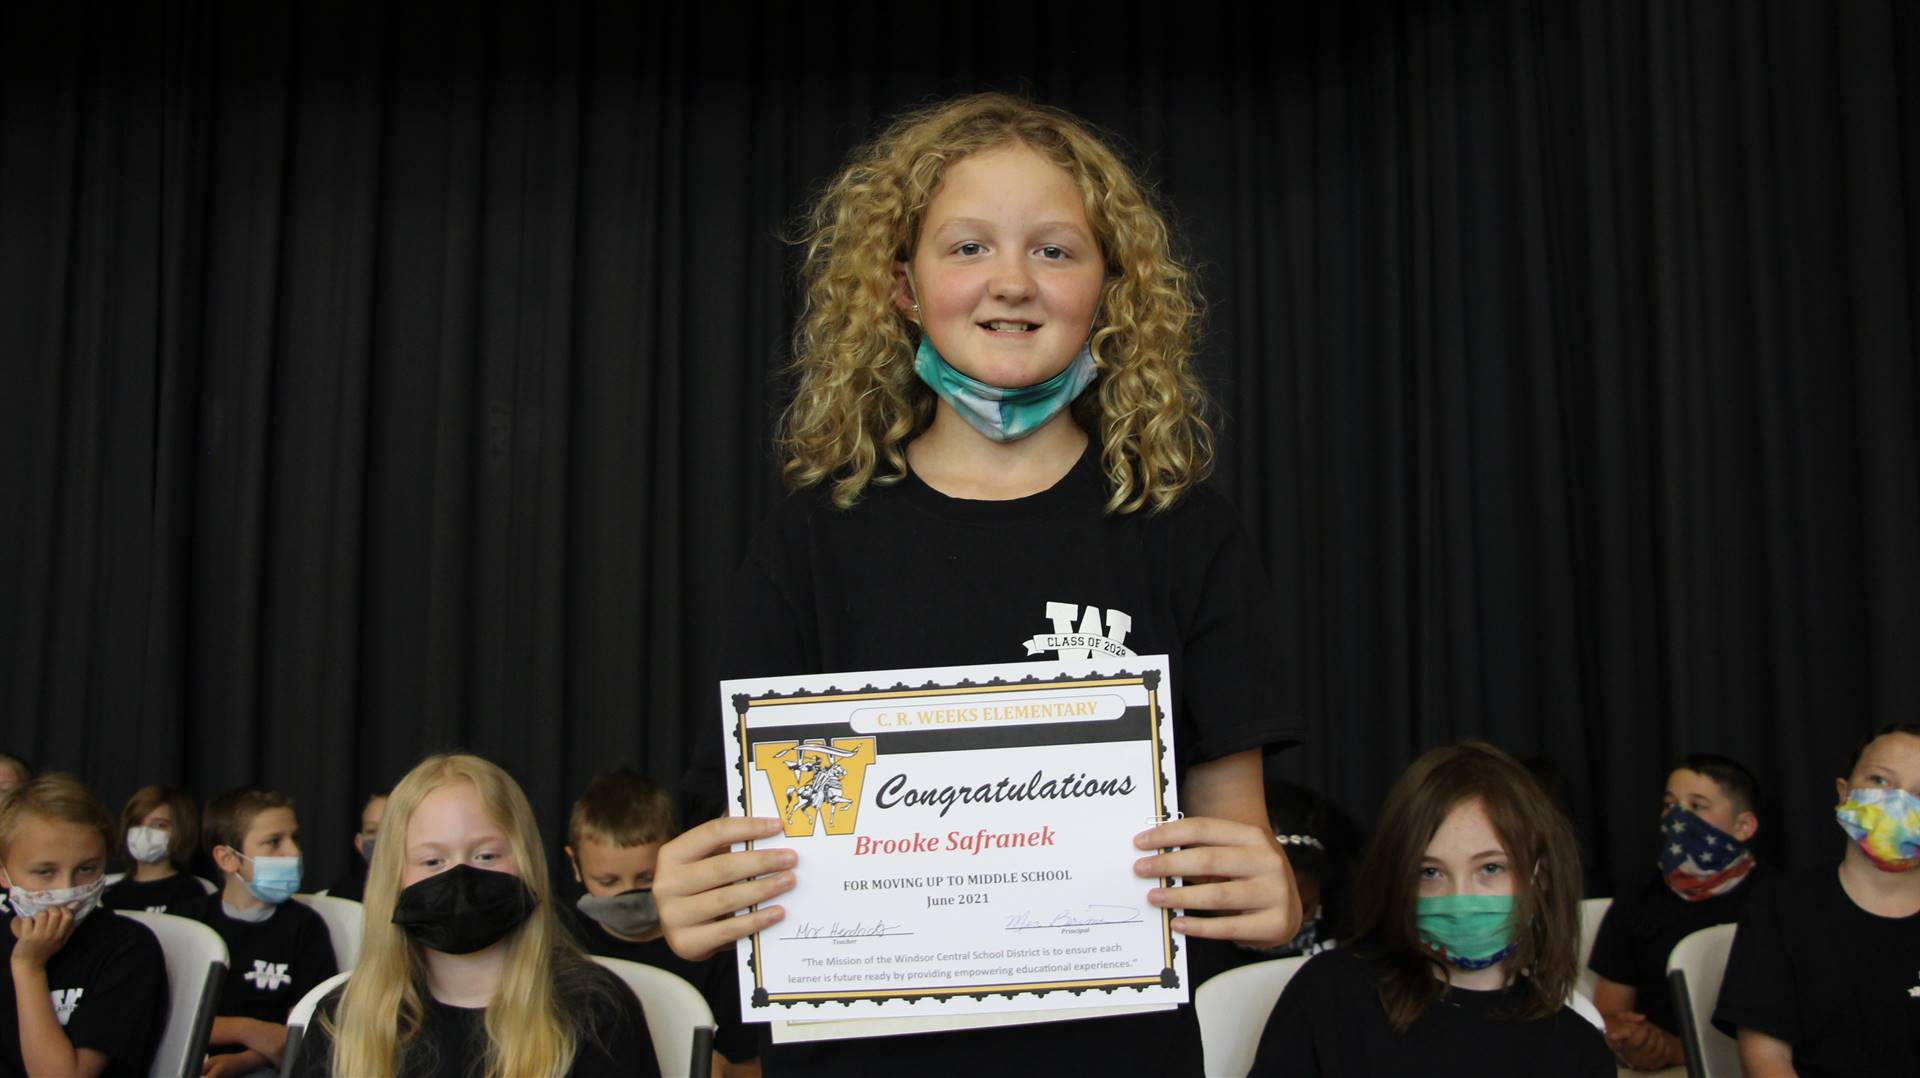 Young girl holding a certificate